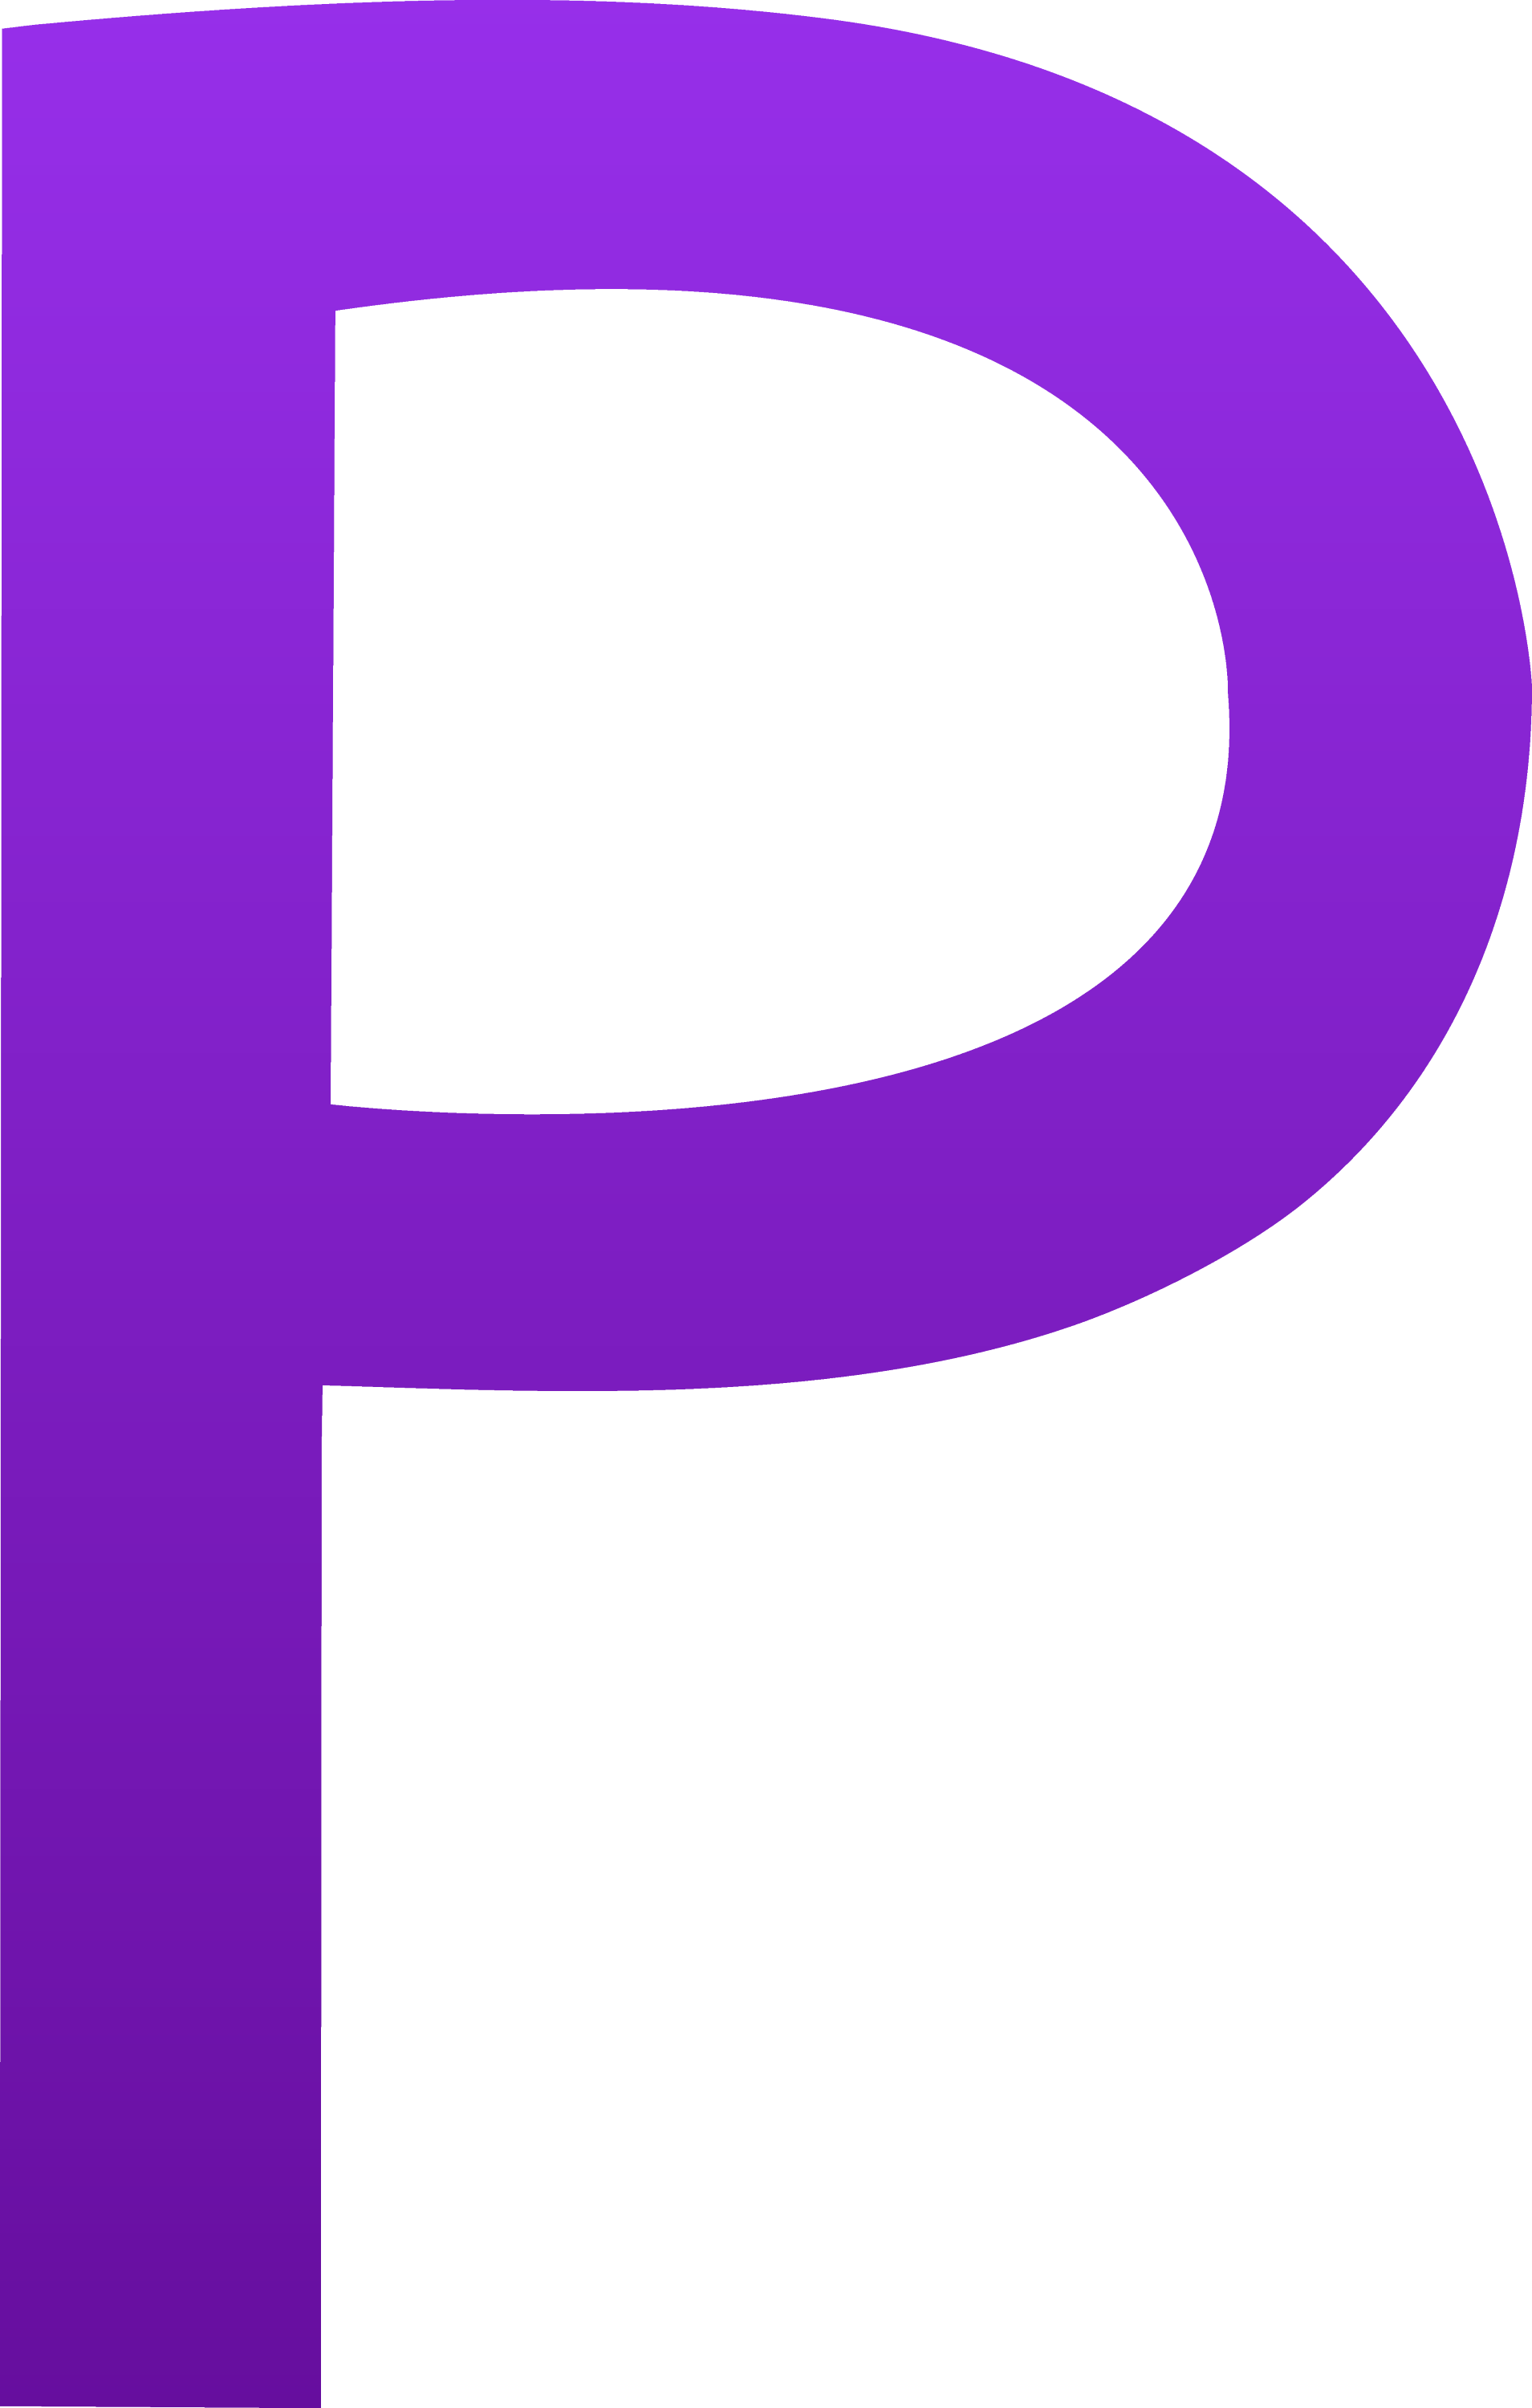 Purple Letter P The letter p